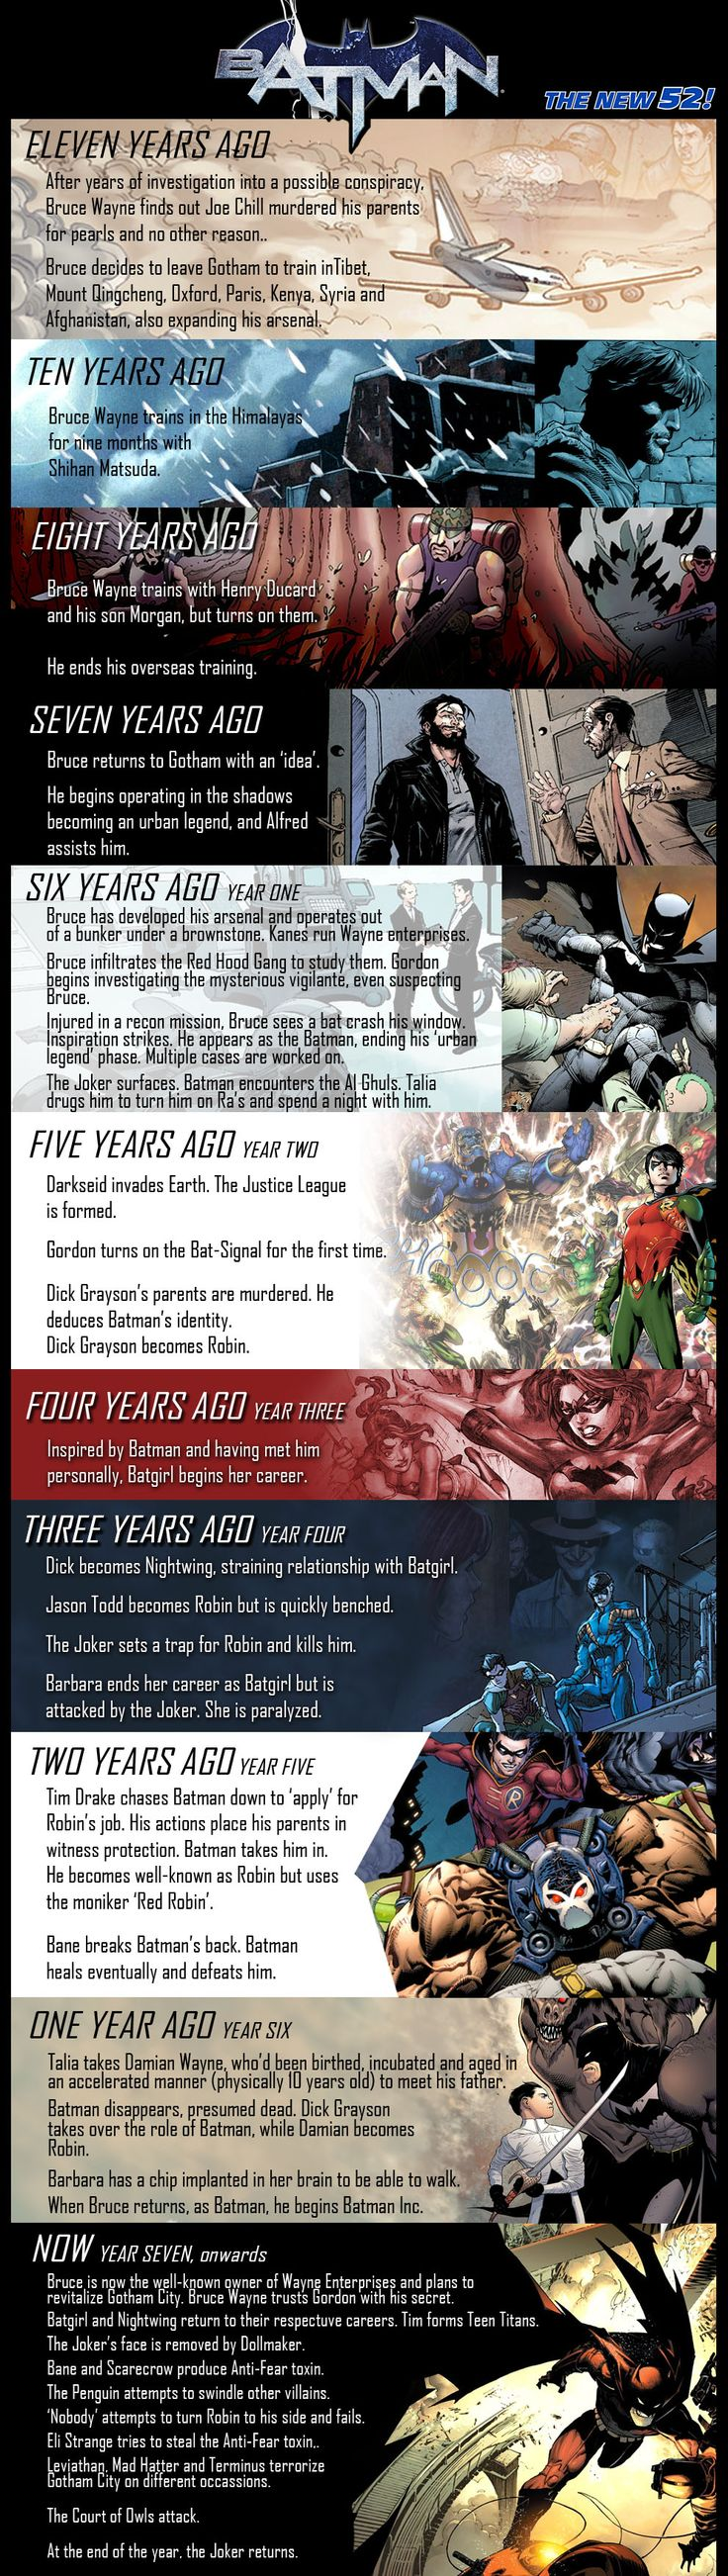 Its not true. Dick Grayson led the teen titans and then became nightwing.